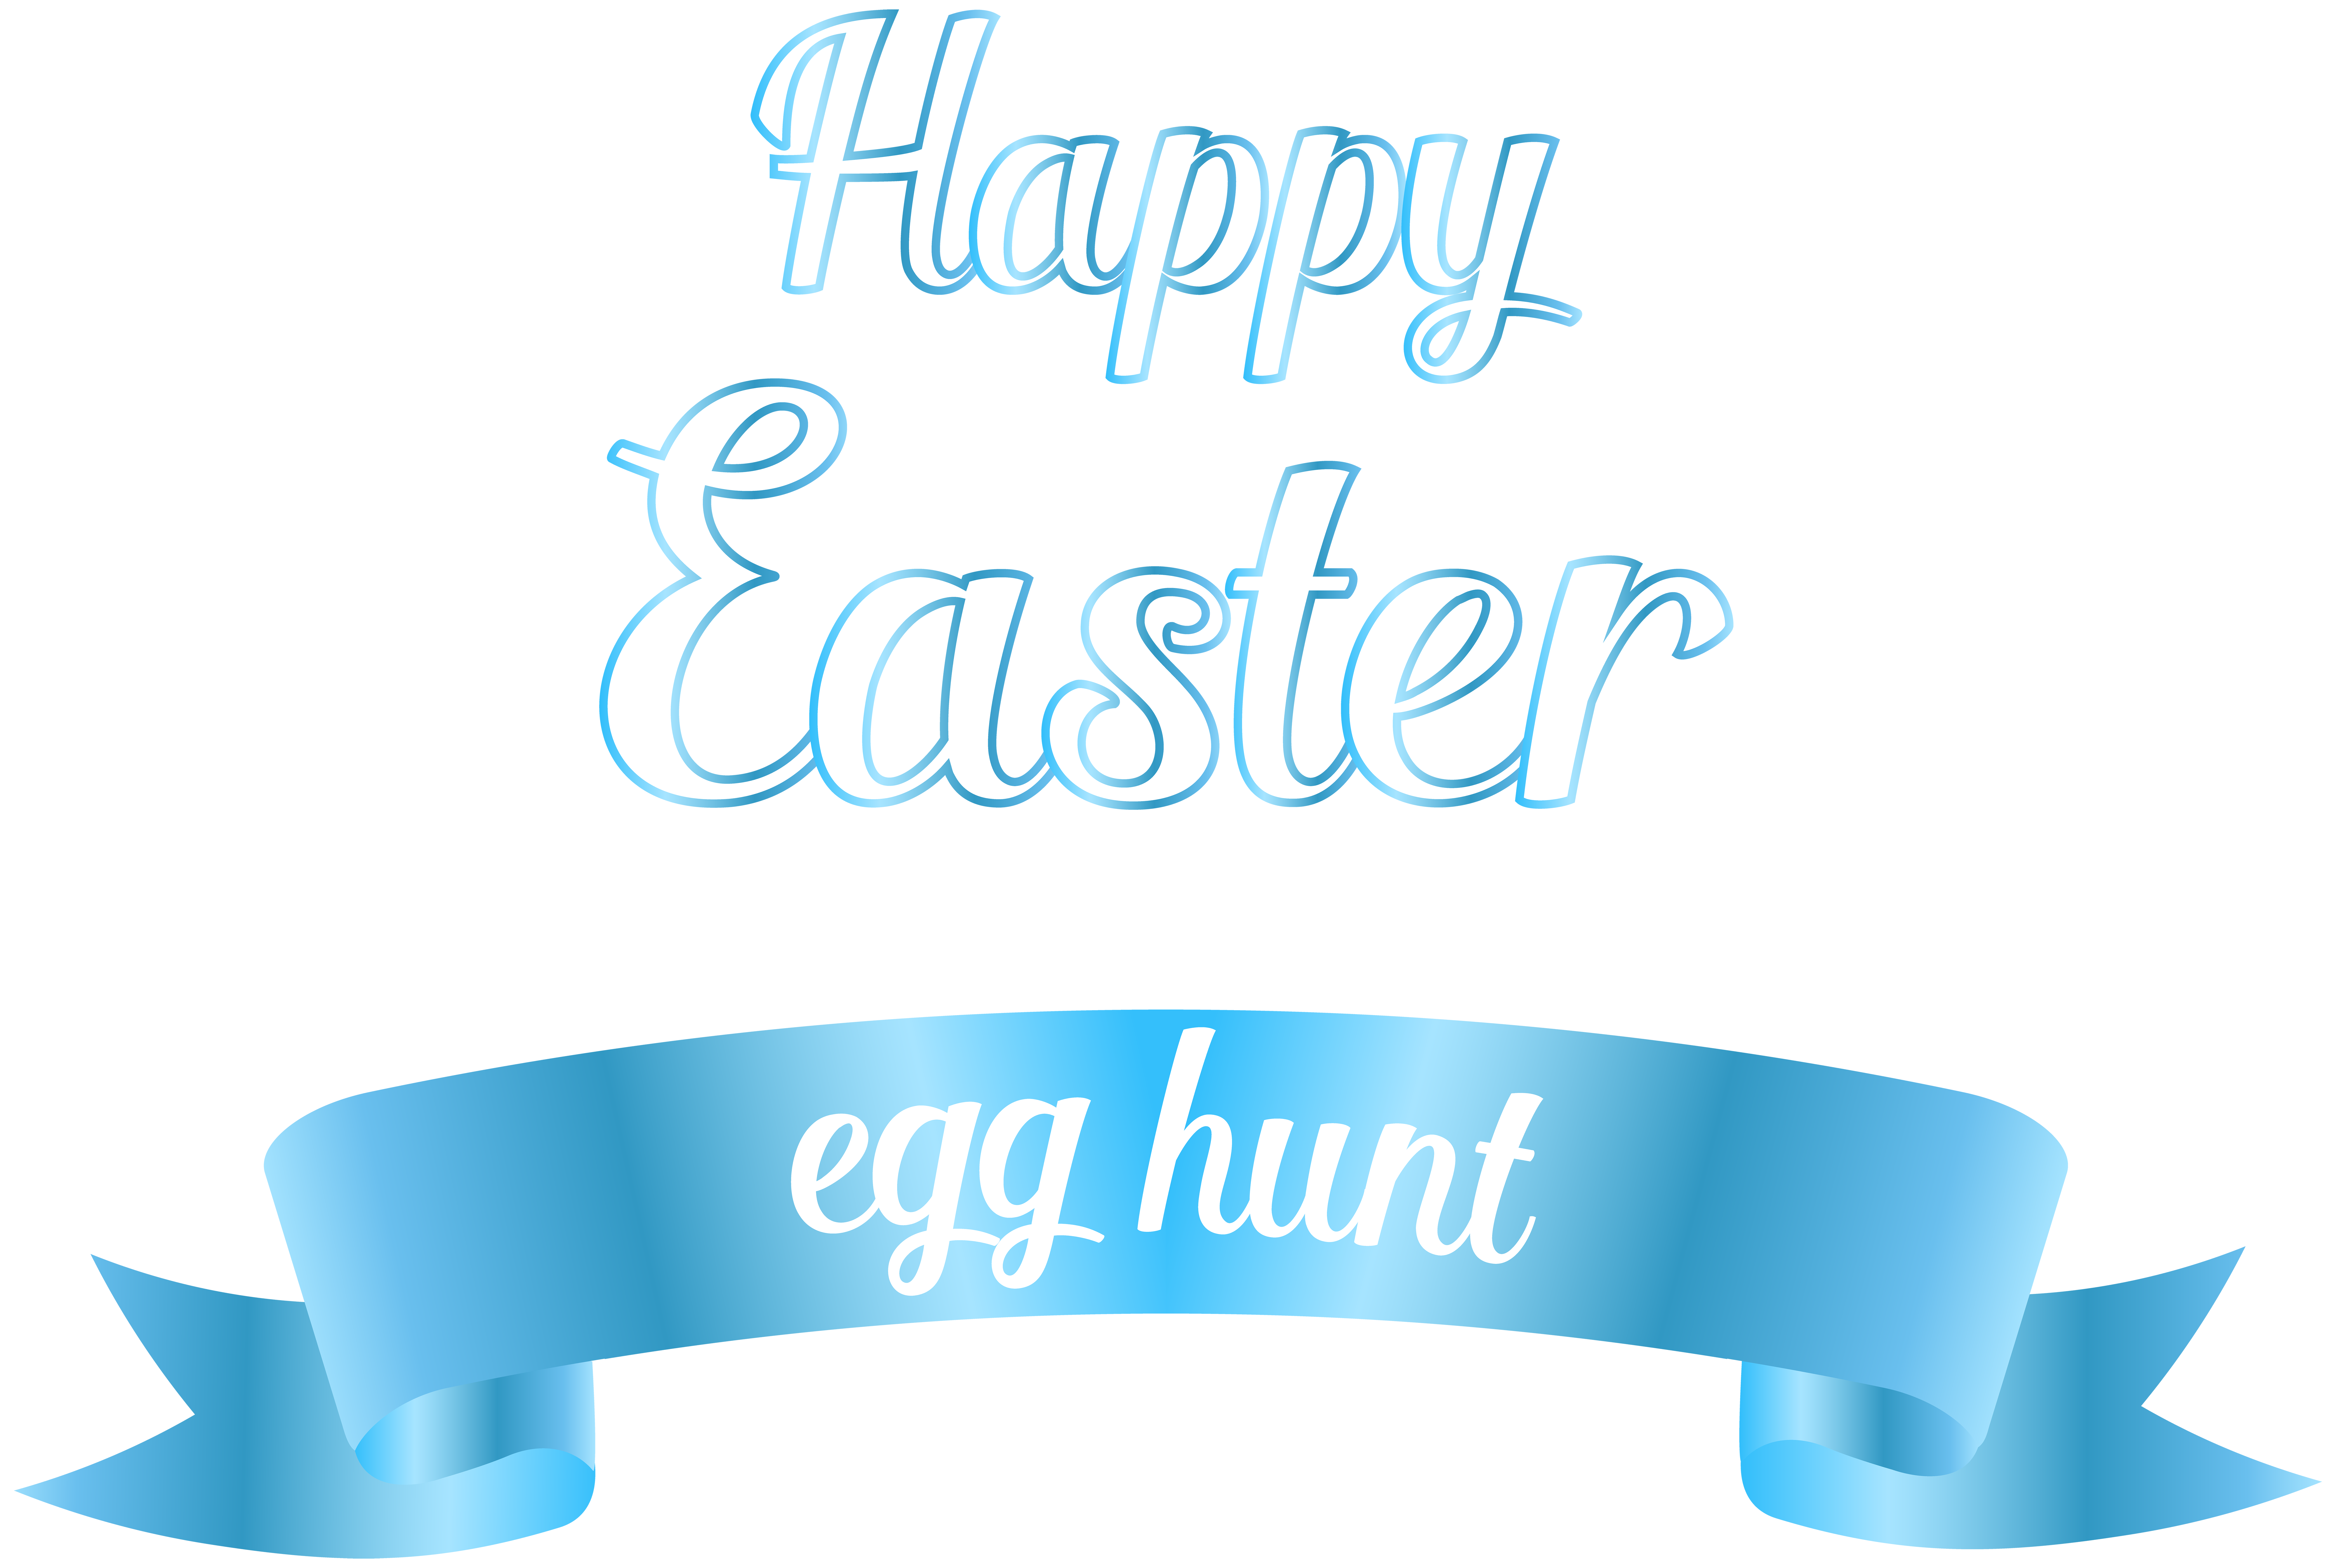 Hunting clipart goose hunting. Happy easter egg hunt